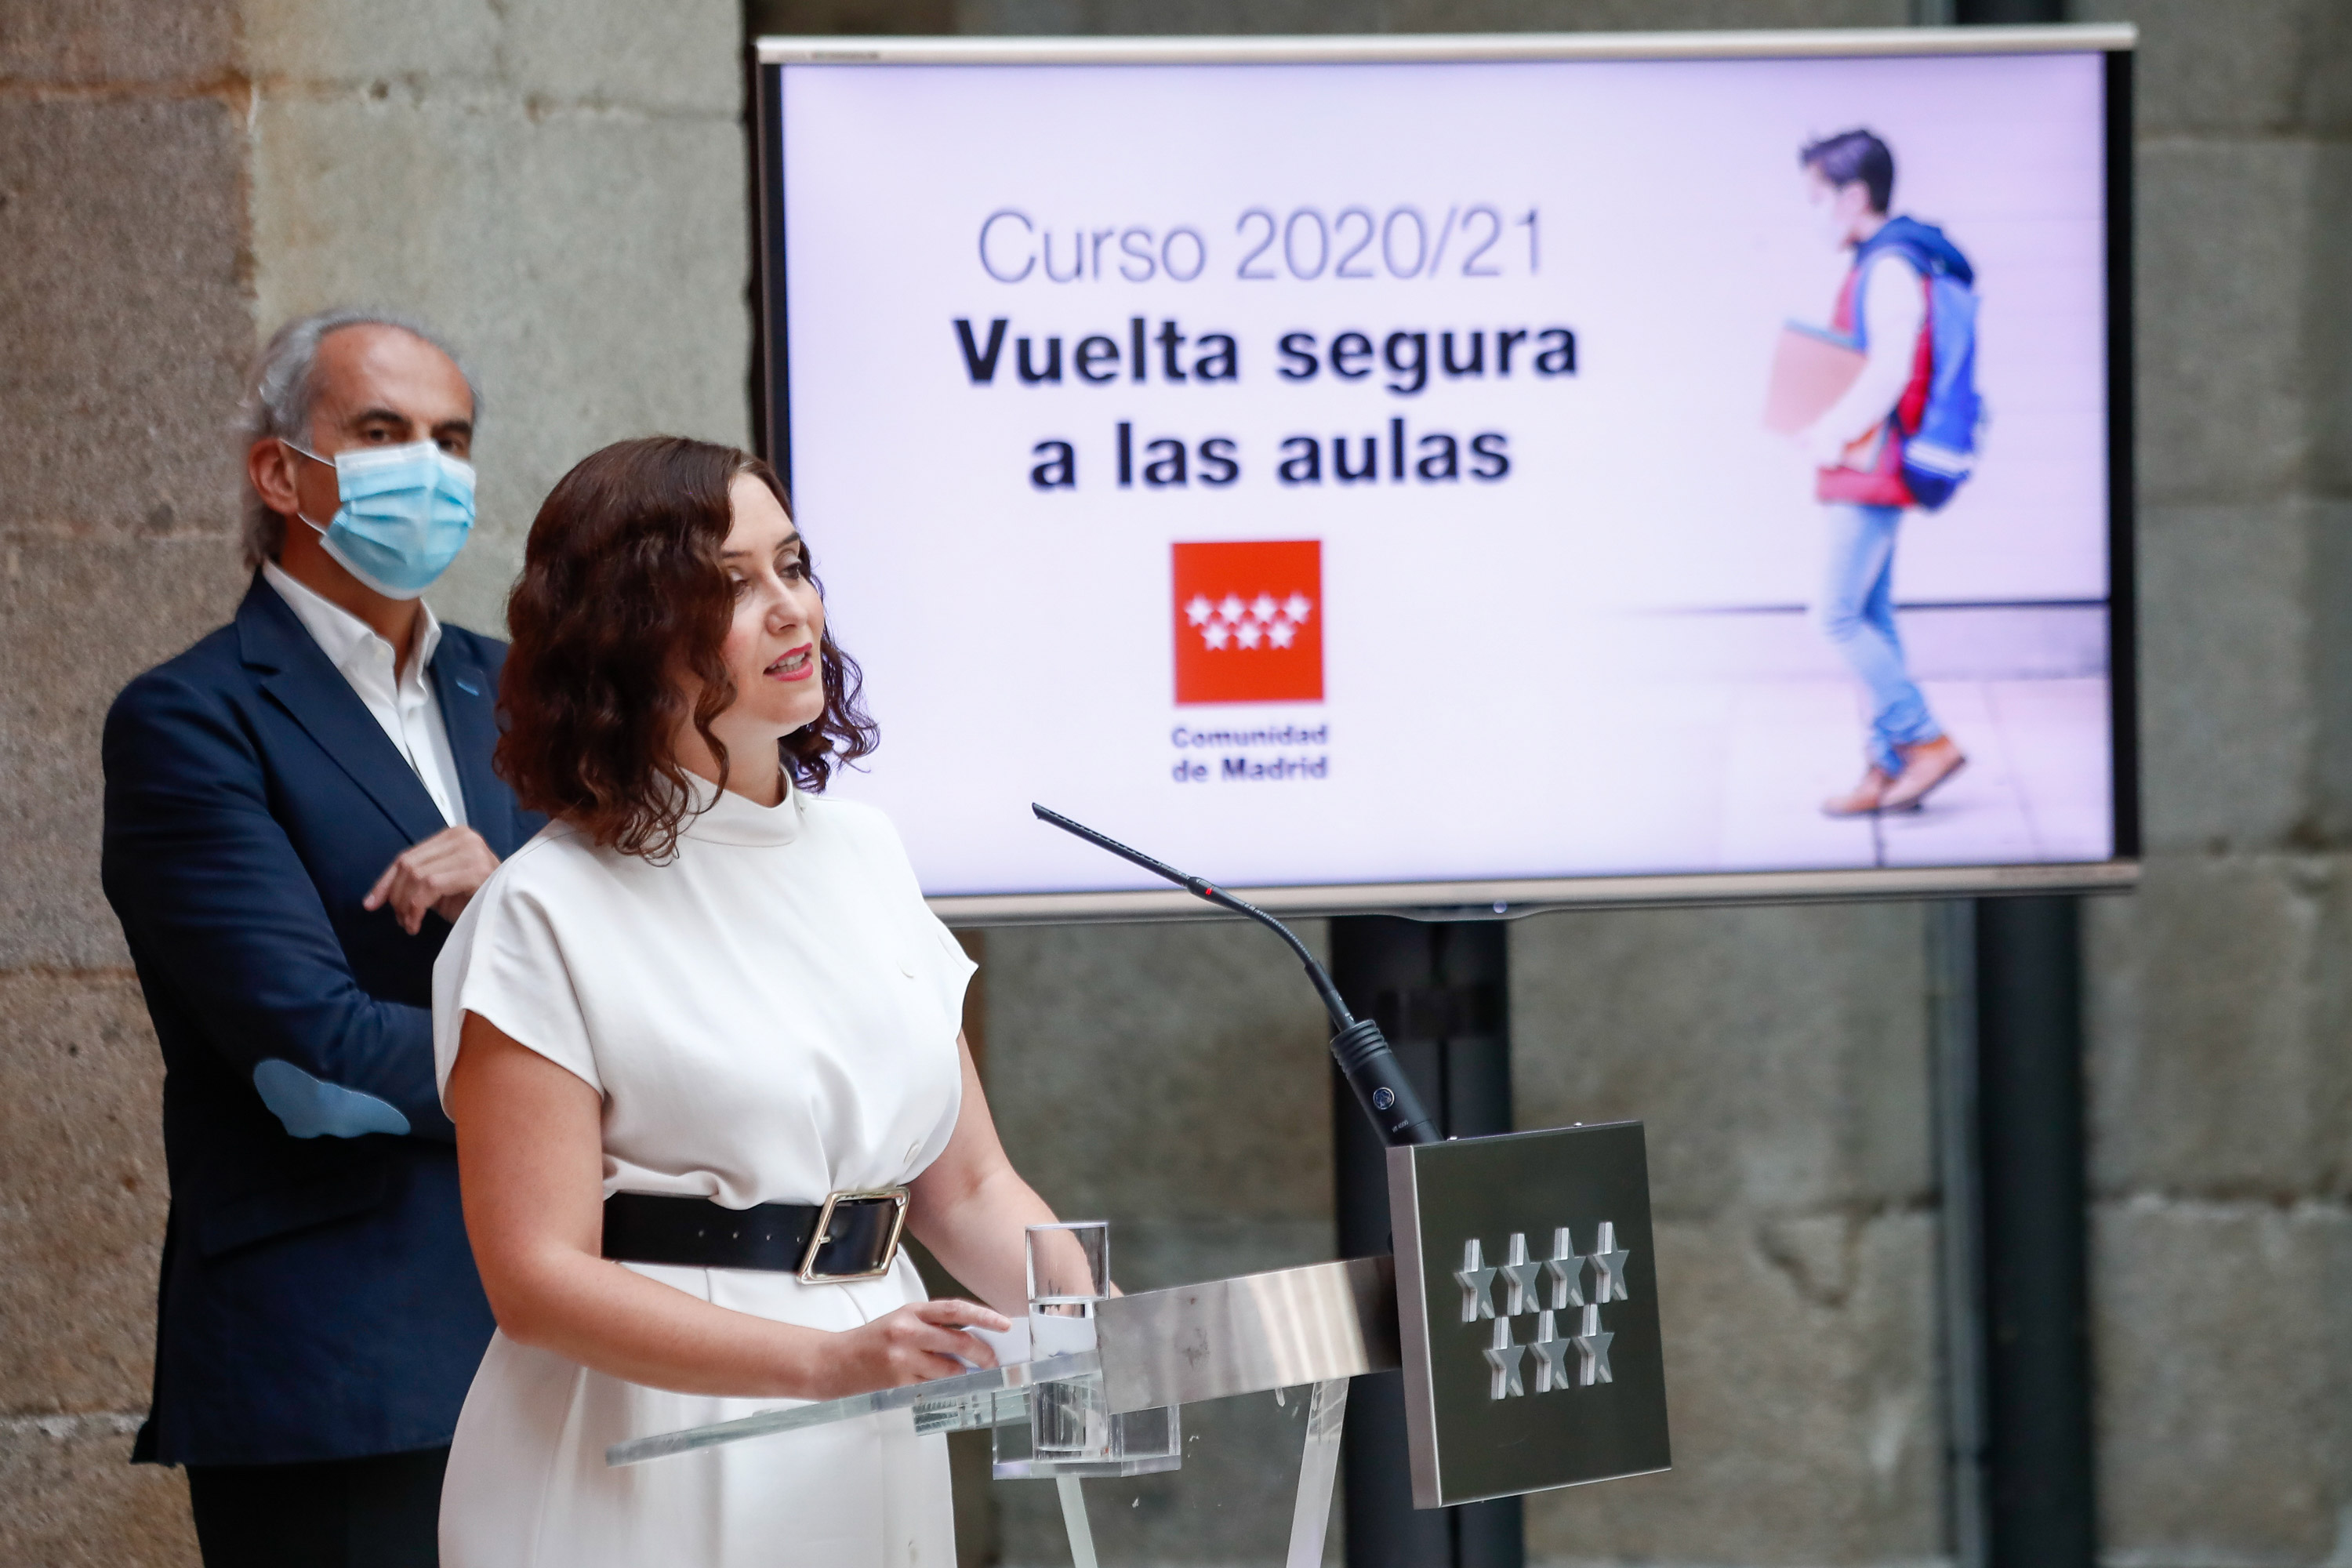 The president of Spain's Madrid region, Isabel Díaz Ayuso, speaks during a presentation of the regional government's strategy for the return to the schools on August 25 in Madrid.